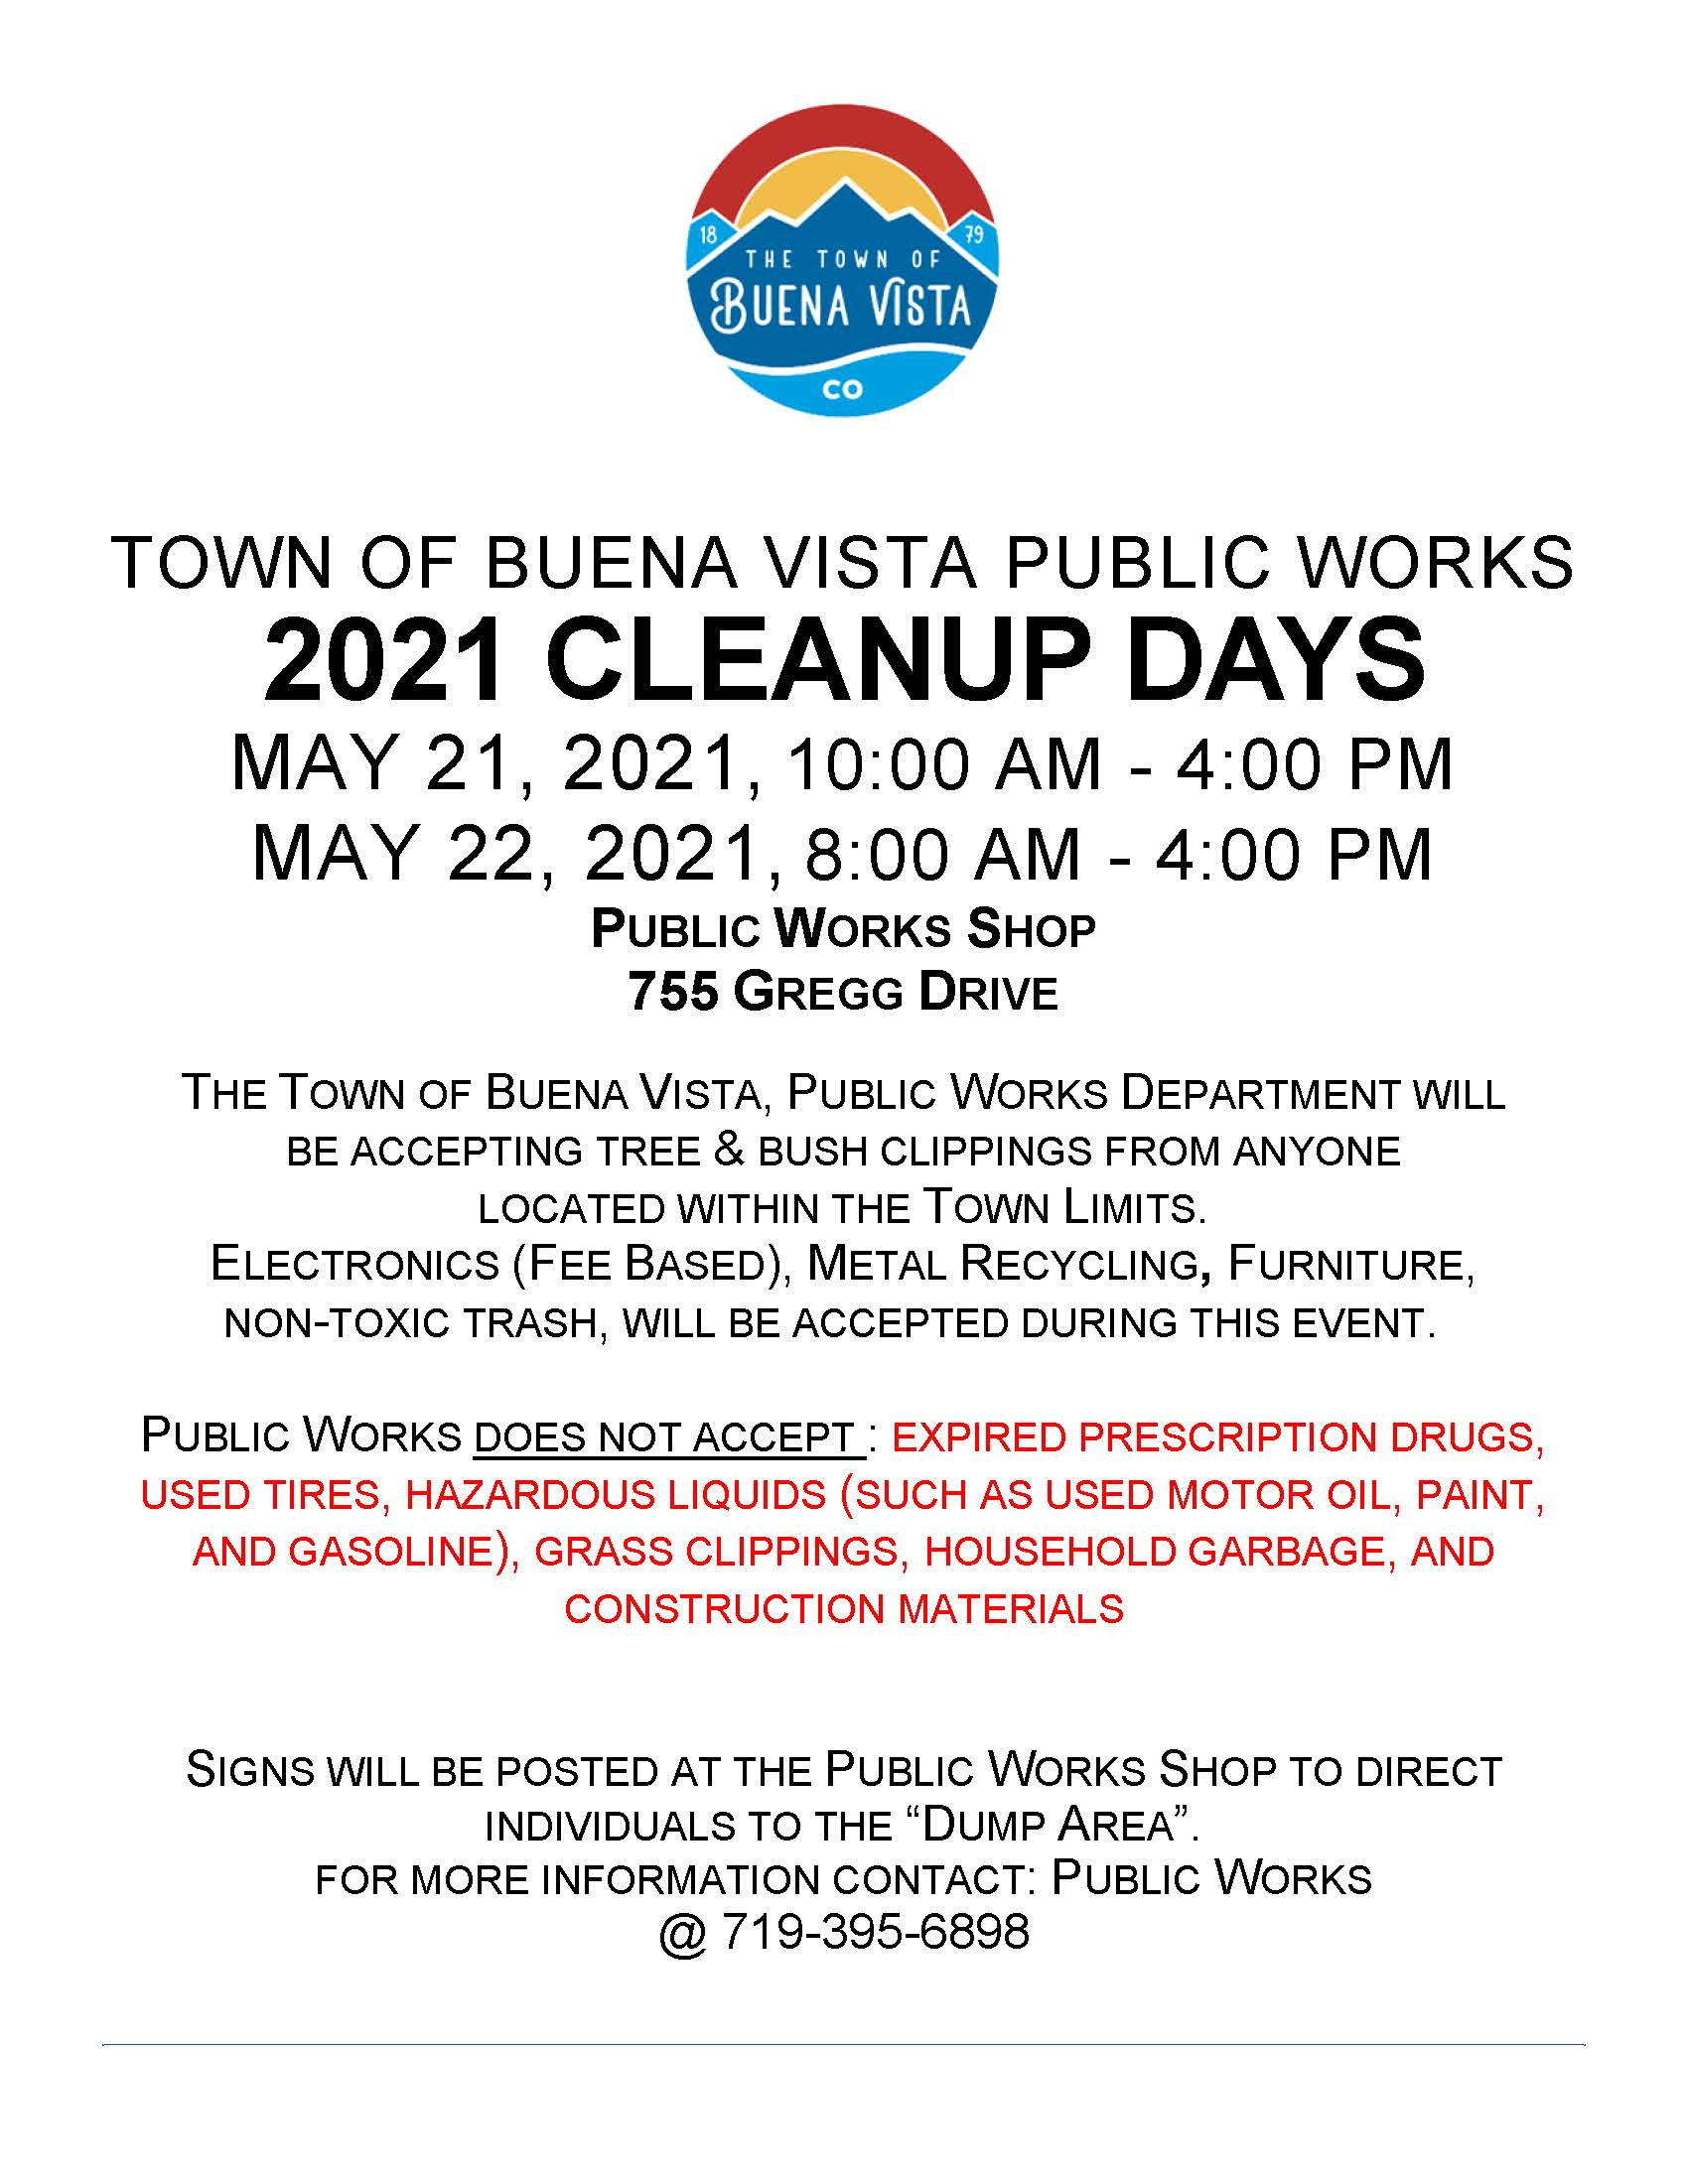 Clean Up Days Flyer (PDF)